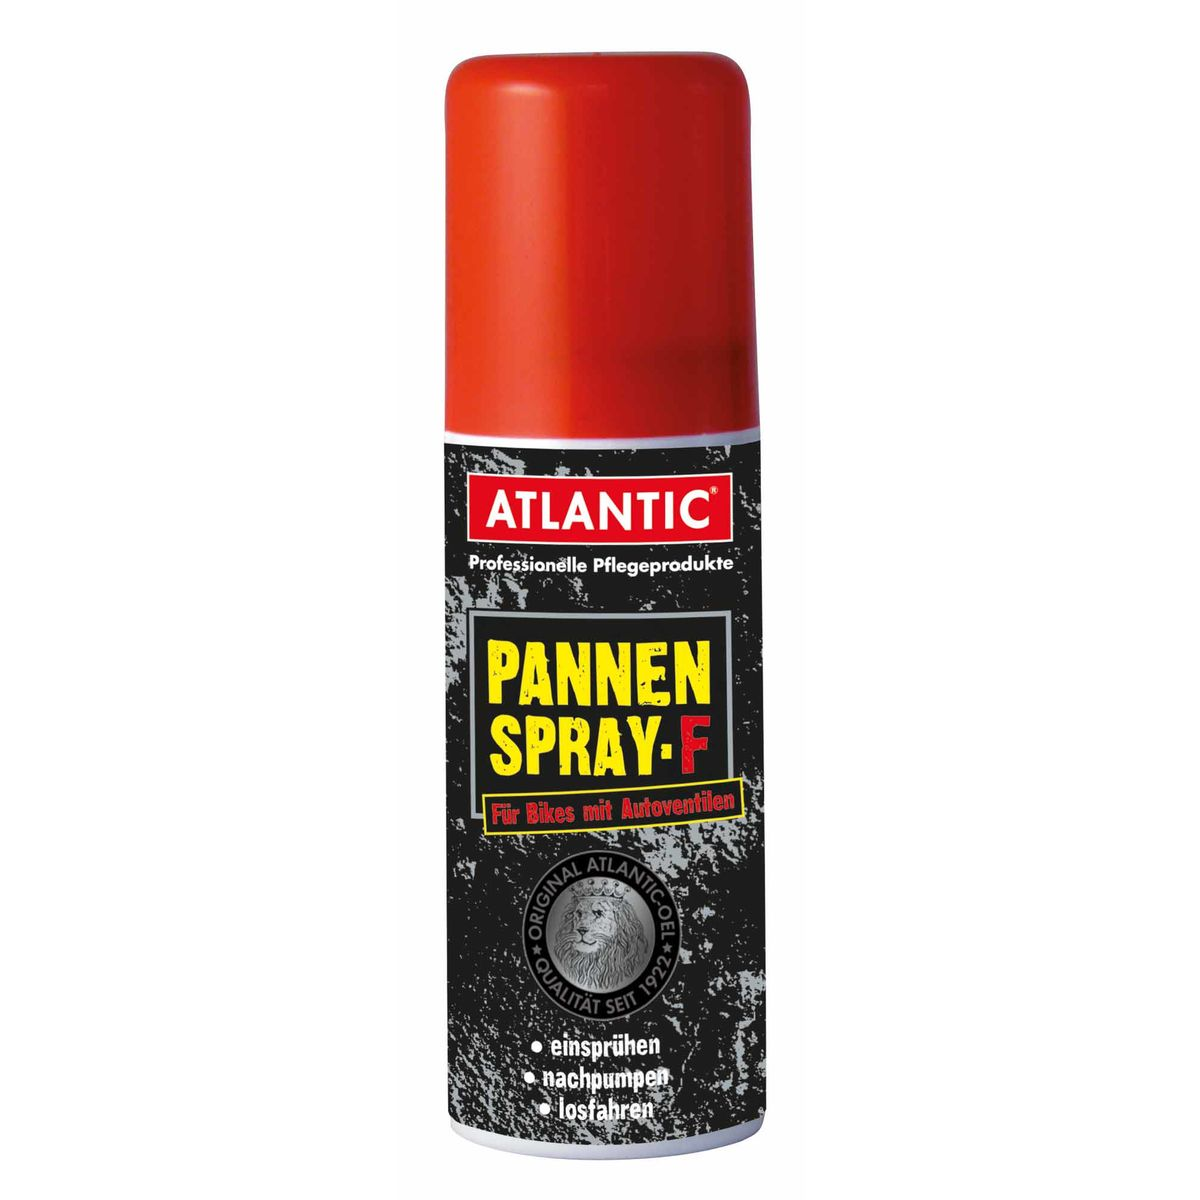 Pannenspray F tyre sealant for Dunlop valves